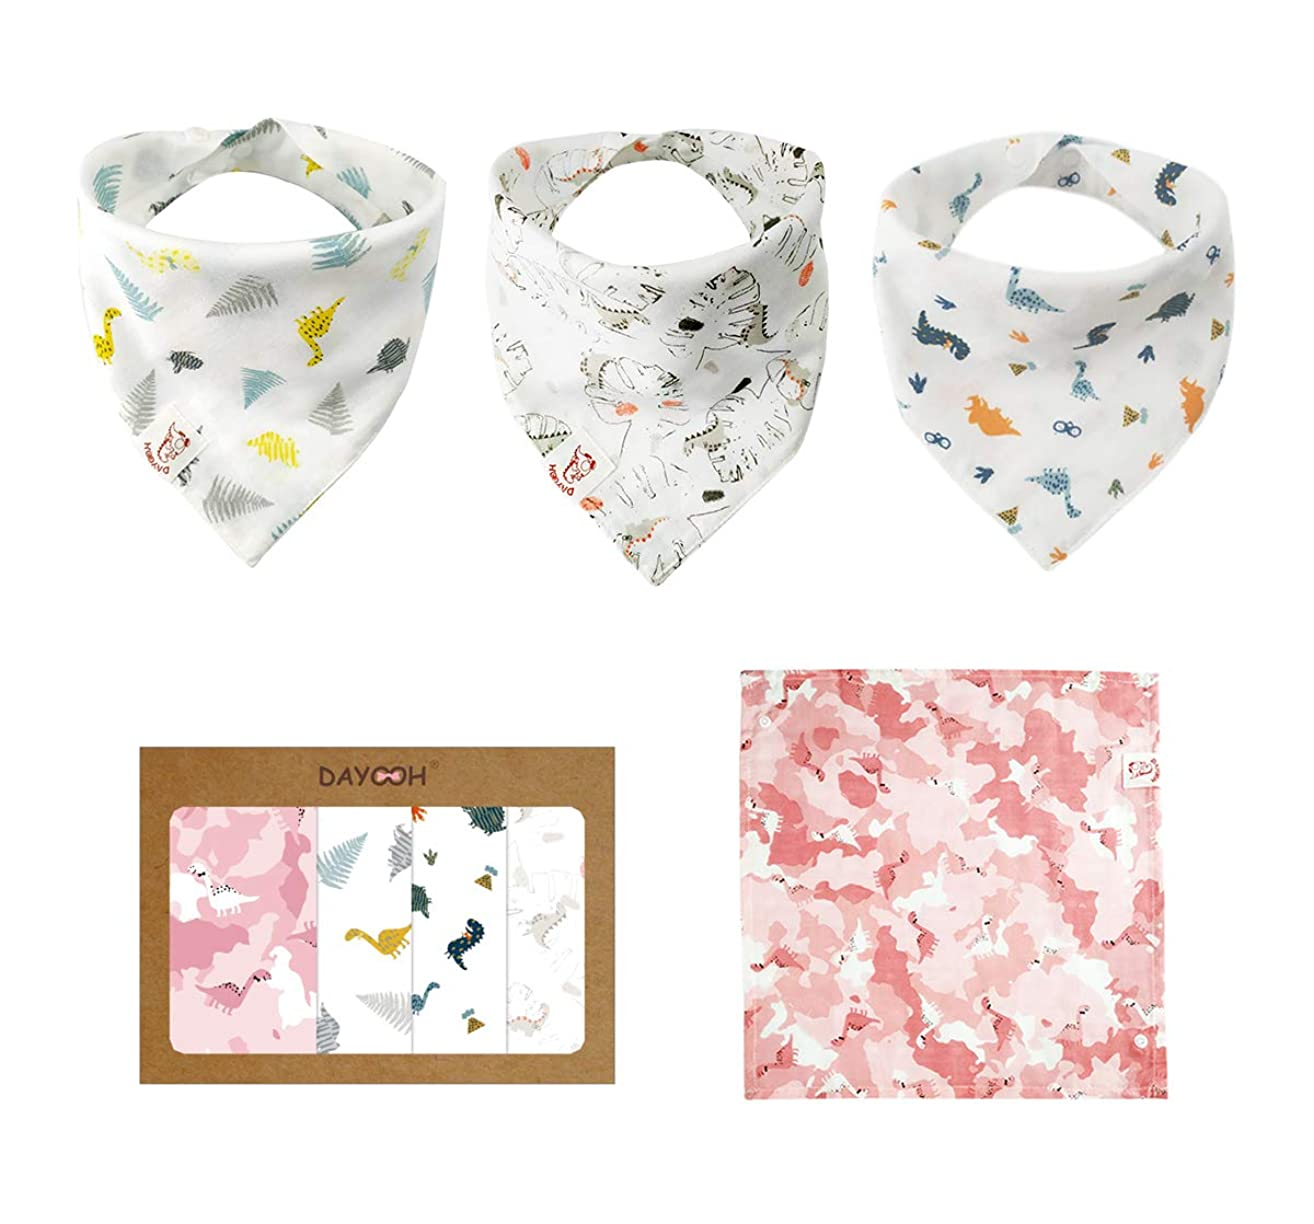 Muslin Bandana Bibs - Organic Scarf Bib for Girls with Snaps - 100% Organic Cotton Muslin -1 Square Bandana and 3 Muslin Bibs for Teething Babies,Camouflage Dinosaur, Pink